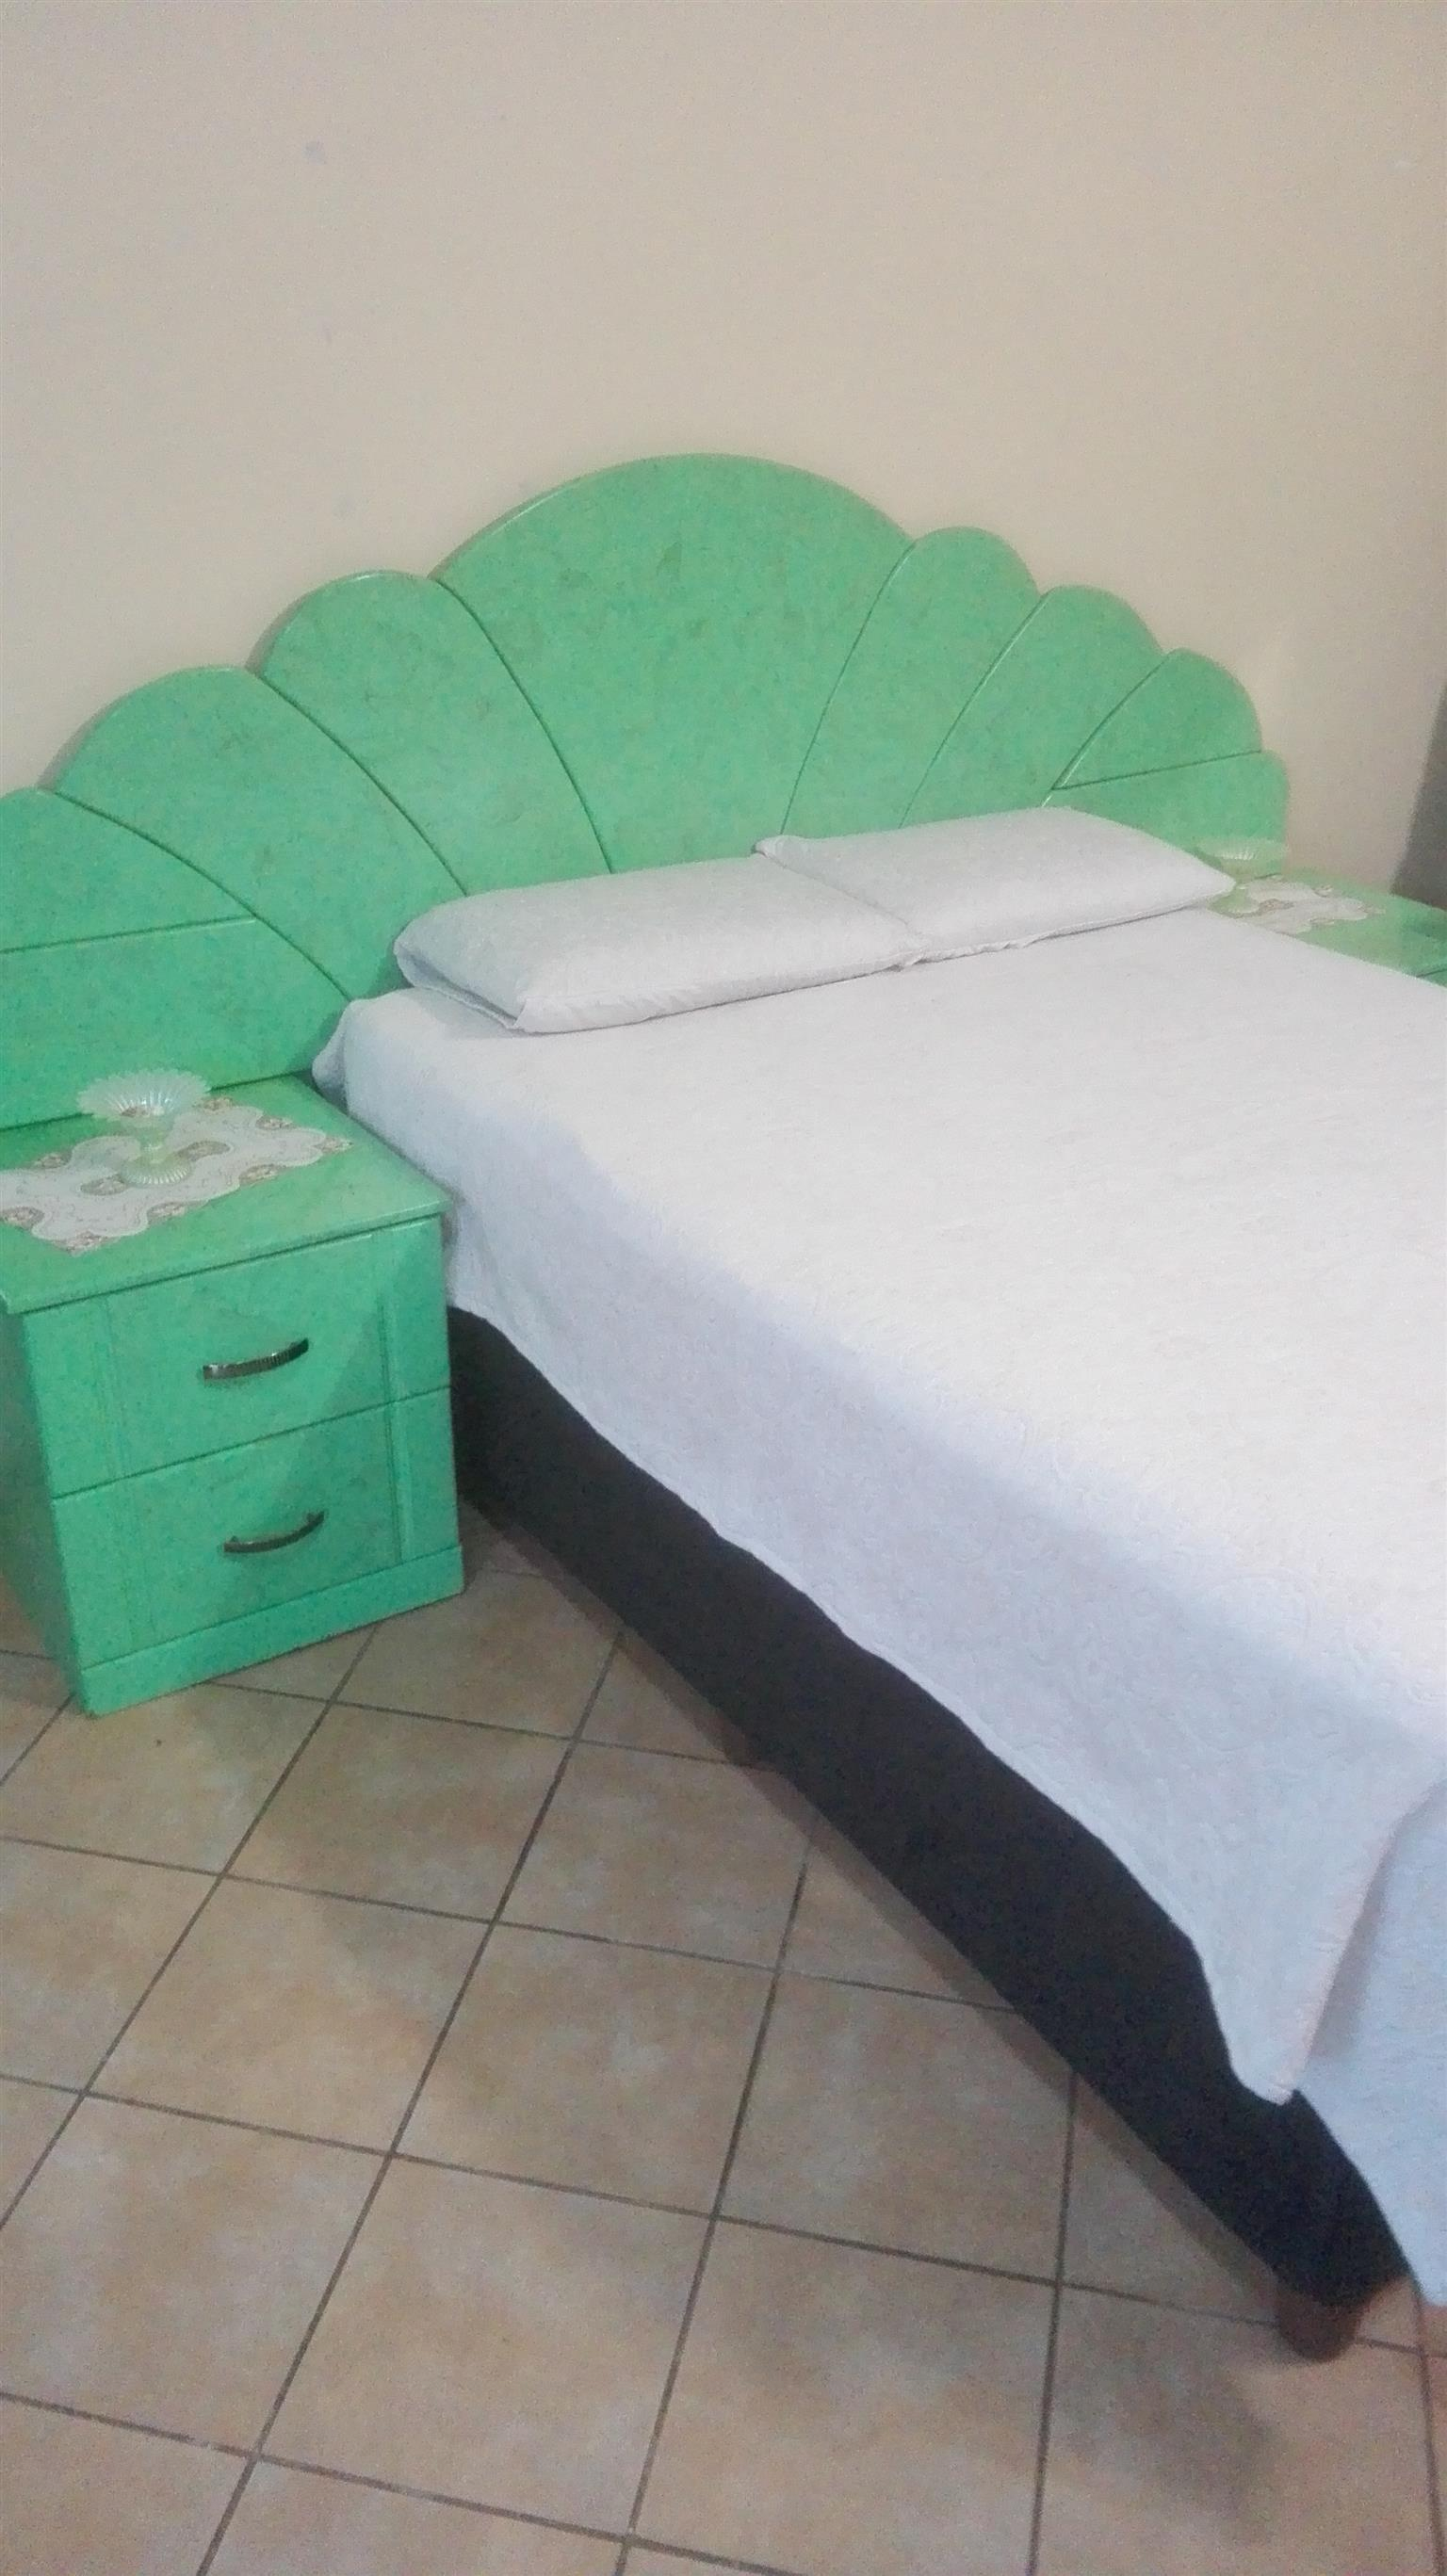 Bedroom Suite Set with Bed, Headboard, Pedestals, Dressing table